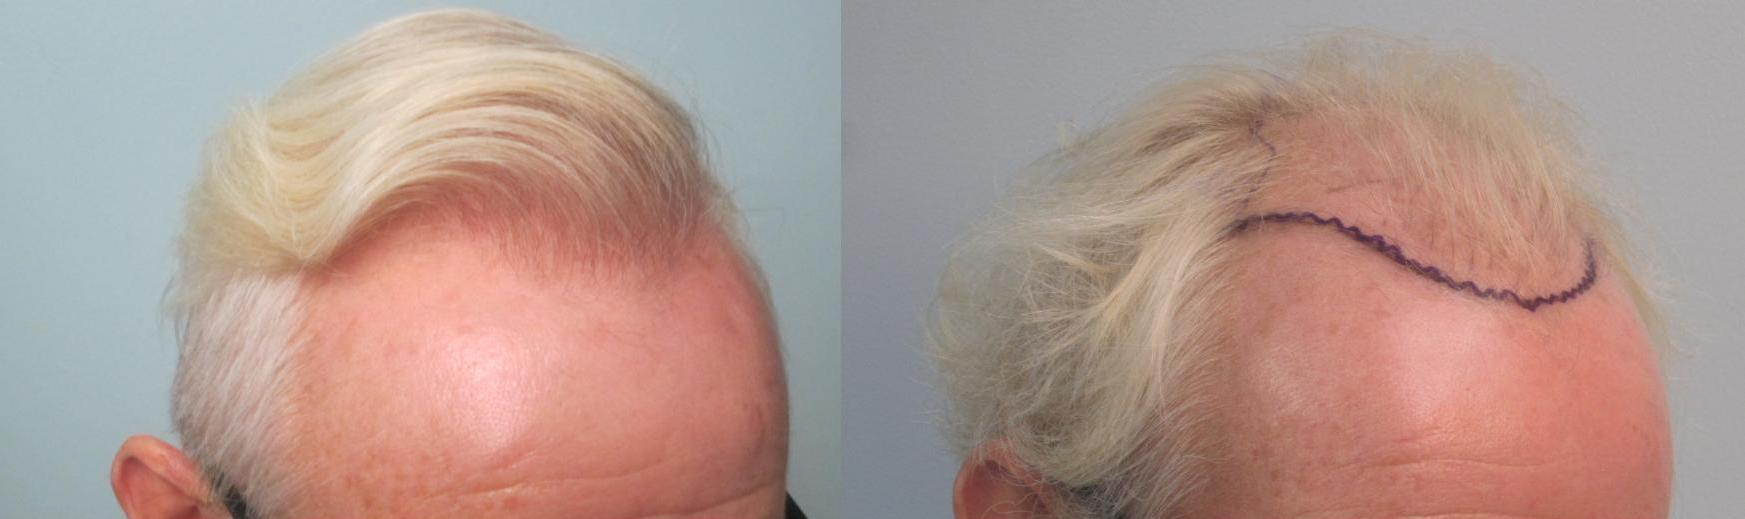 2,608 grafts placed from the frontal hairline till midscalp. Front closeup view. Patient had a prior hair transplant that looked pluggy and sparse and was repaired by Dr Sean Behnam. Please notice how natural and thick the hairline looks.